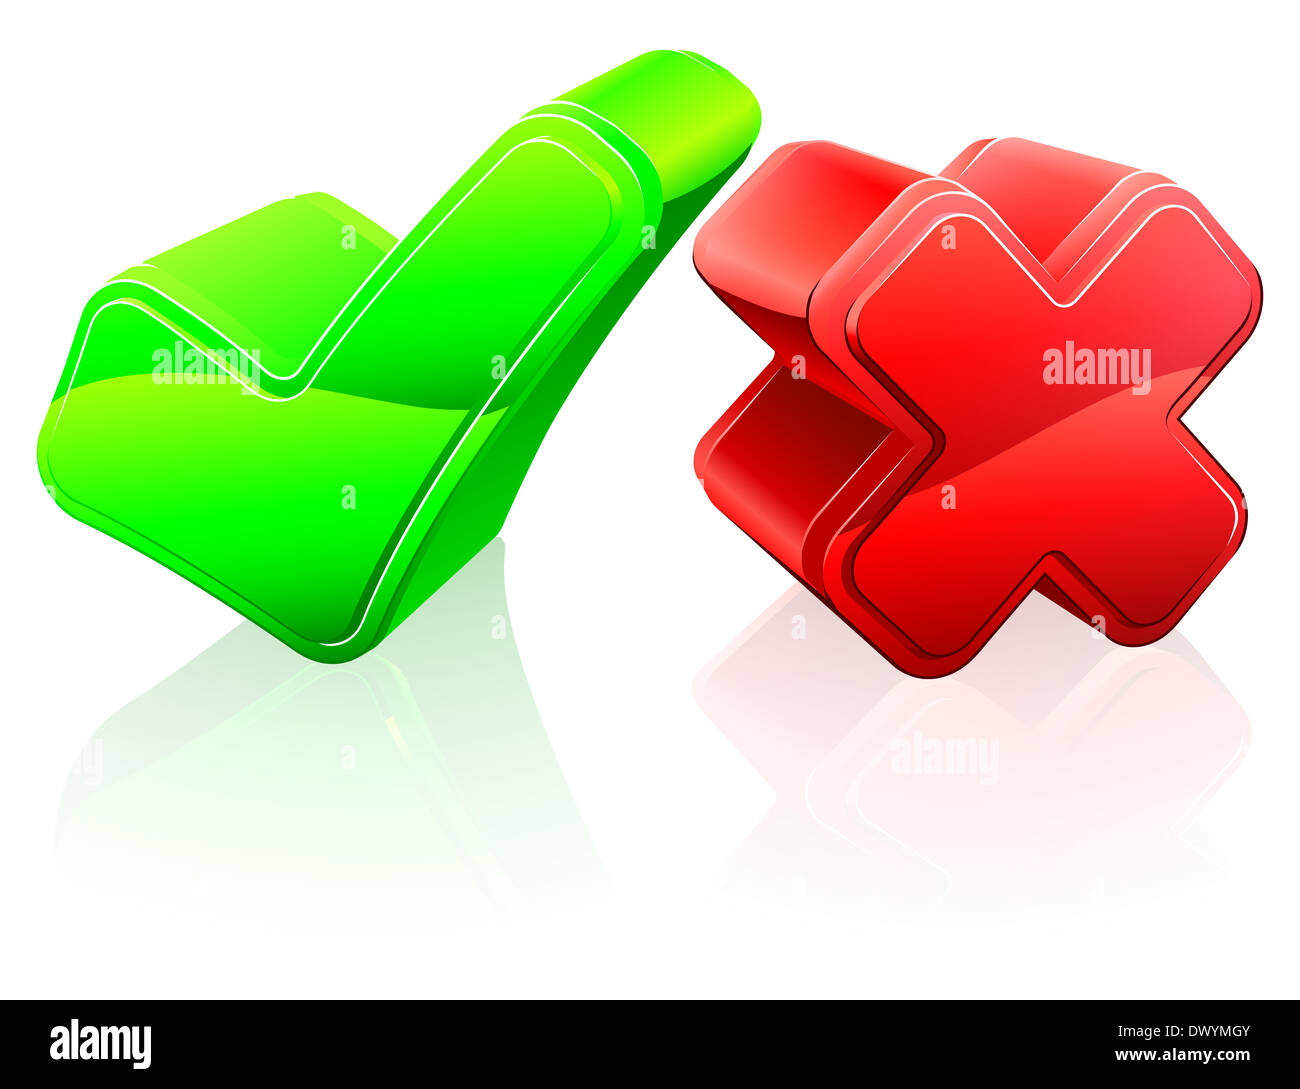 Tick and cross concept of 3d red cross and green tick icons stock tick and cross concept of 3d red cross and green tick icons biocorpaavc Images